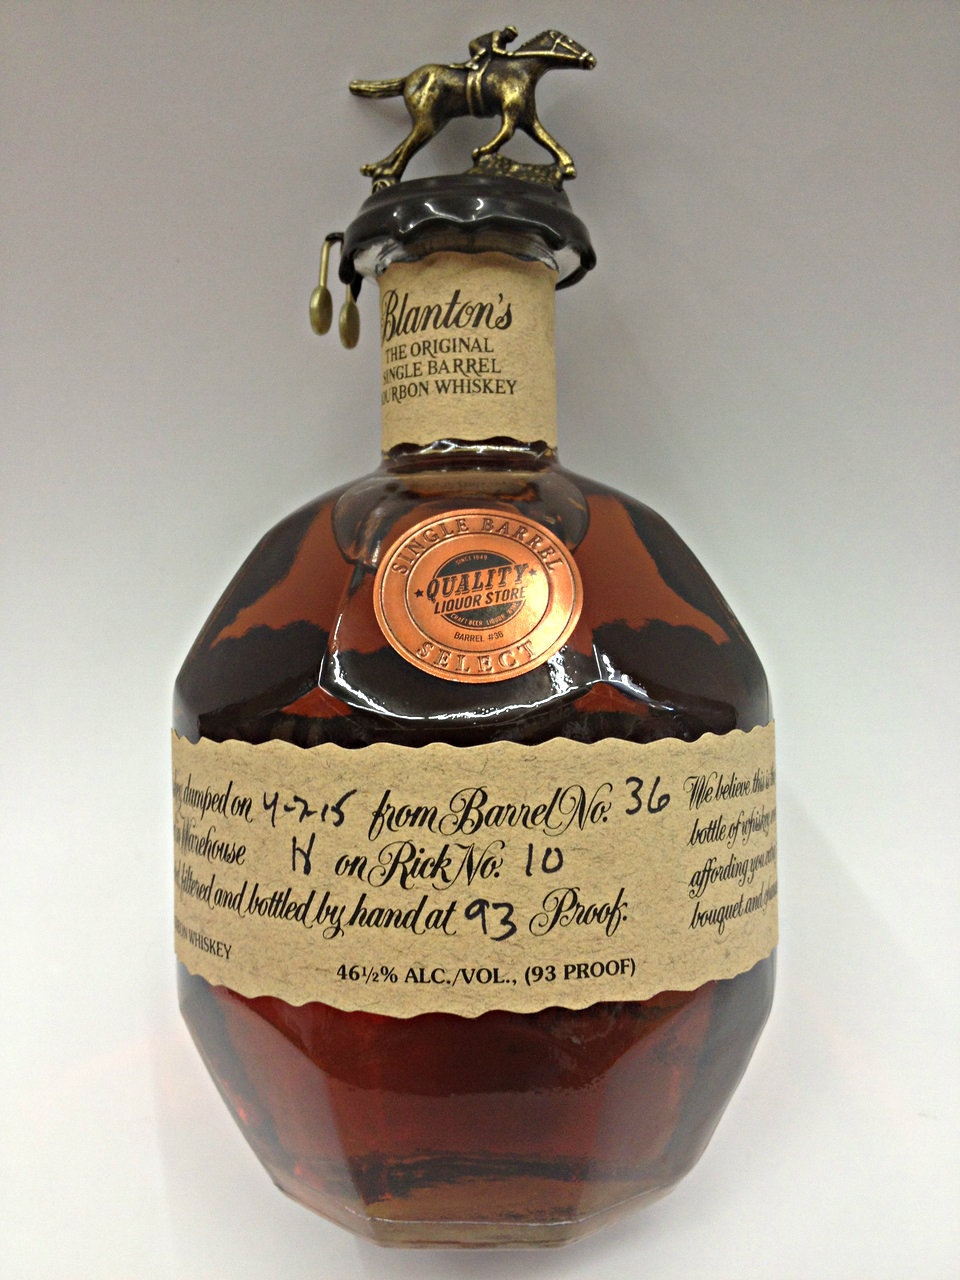 Blanton's Single Barrel Select Private Selection from Quality Liquor Store